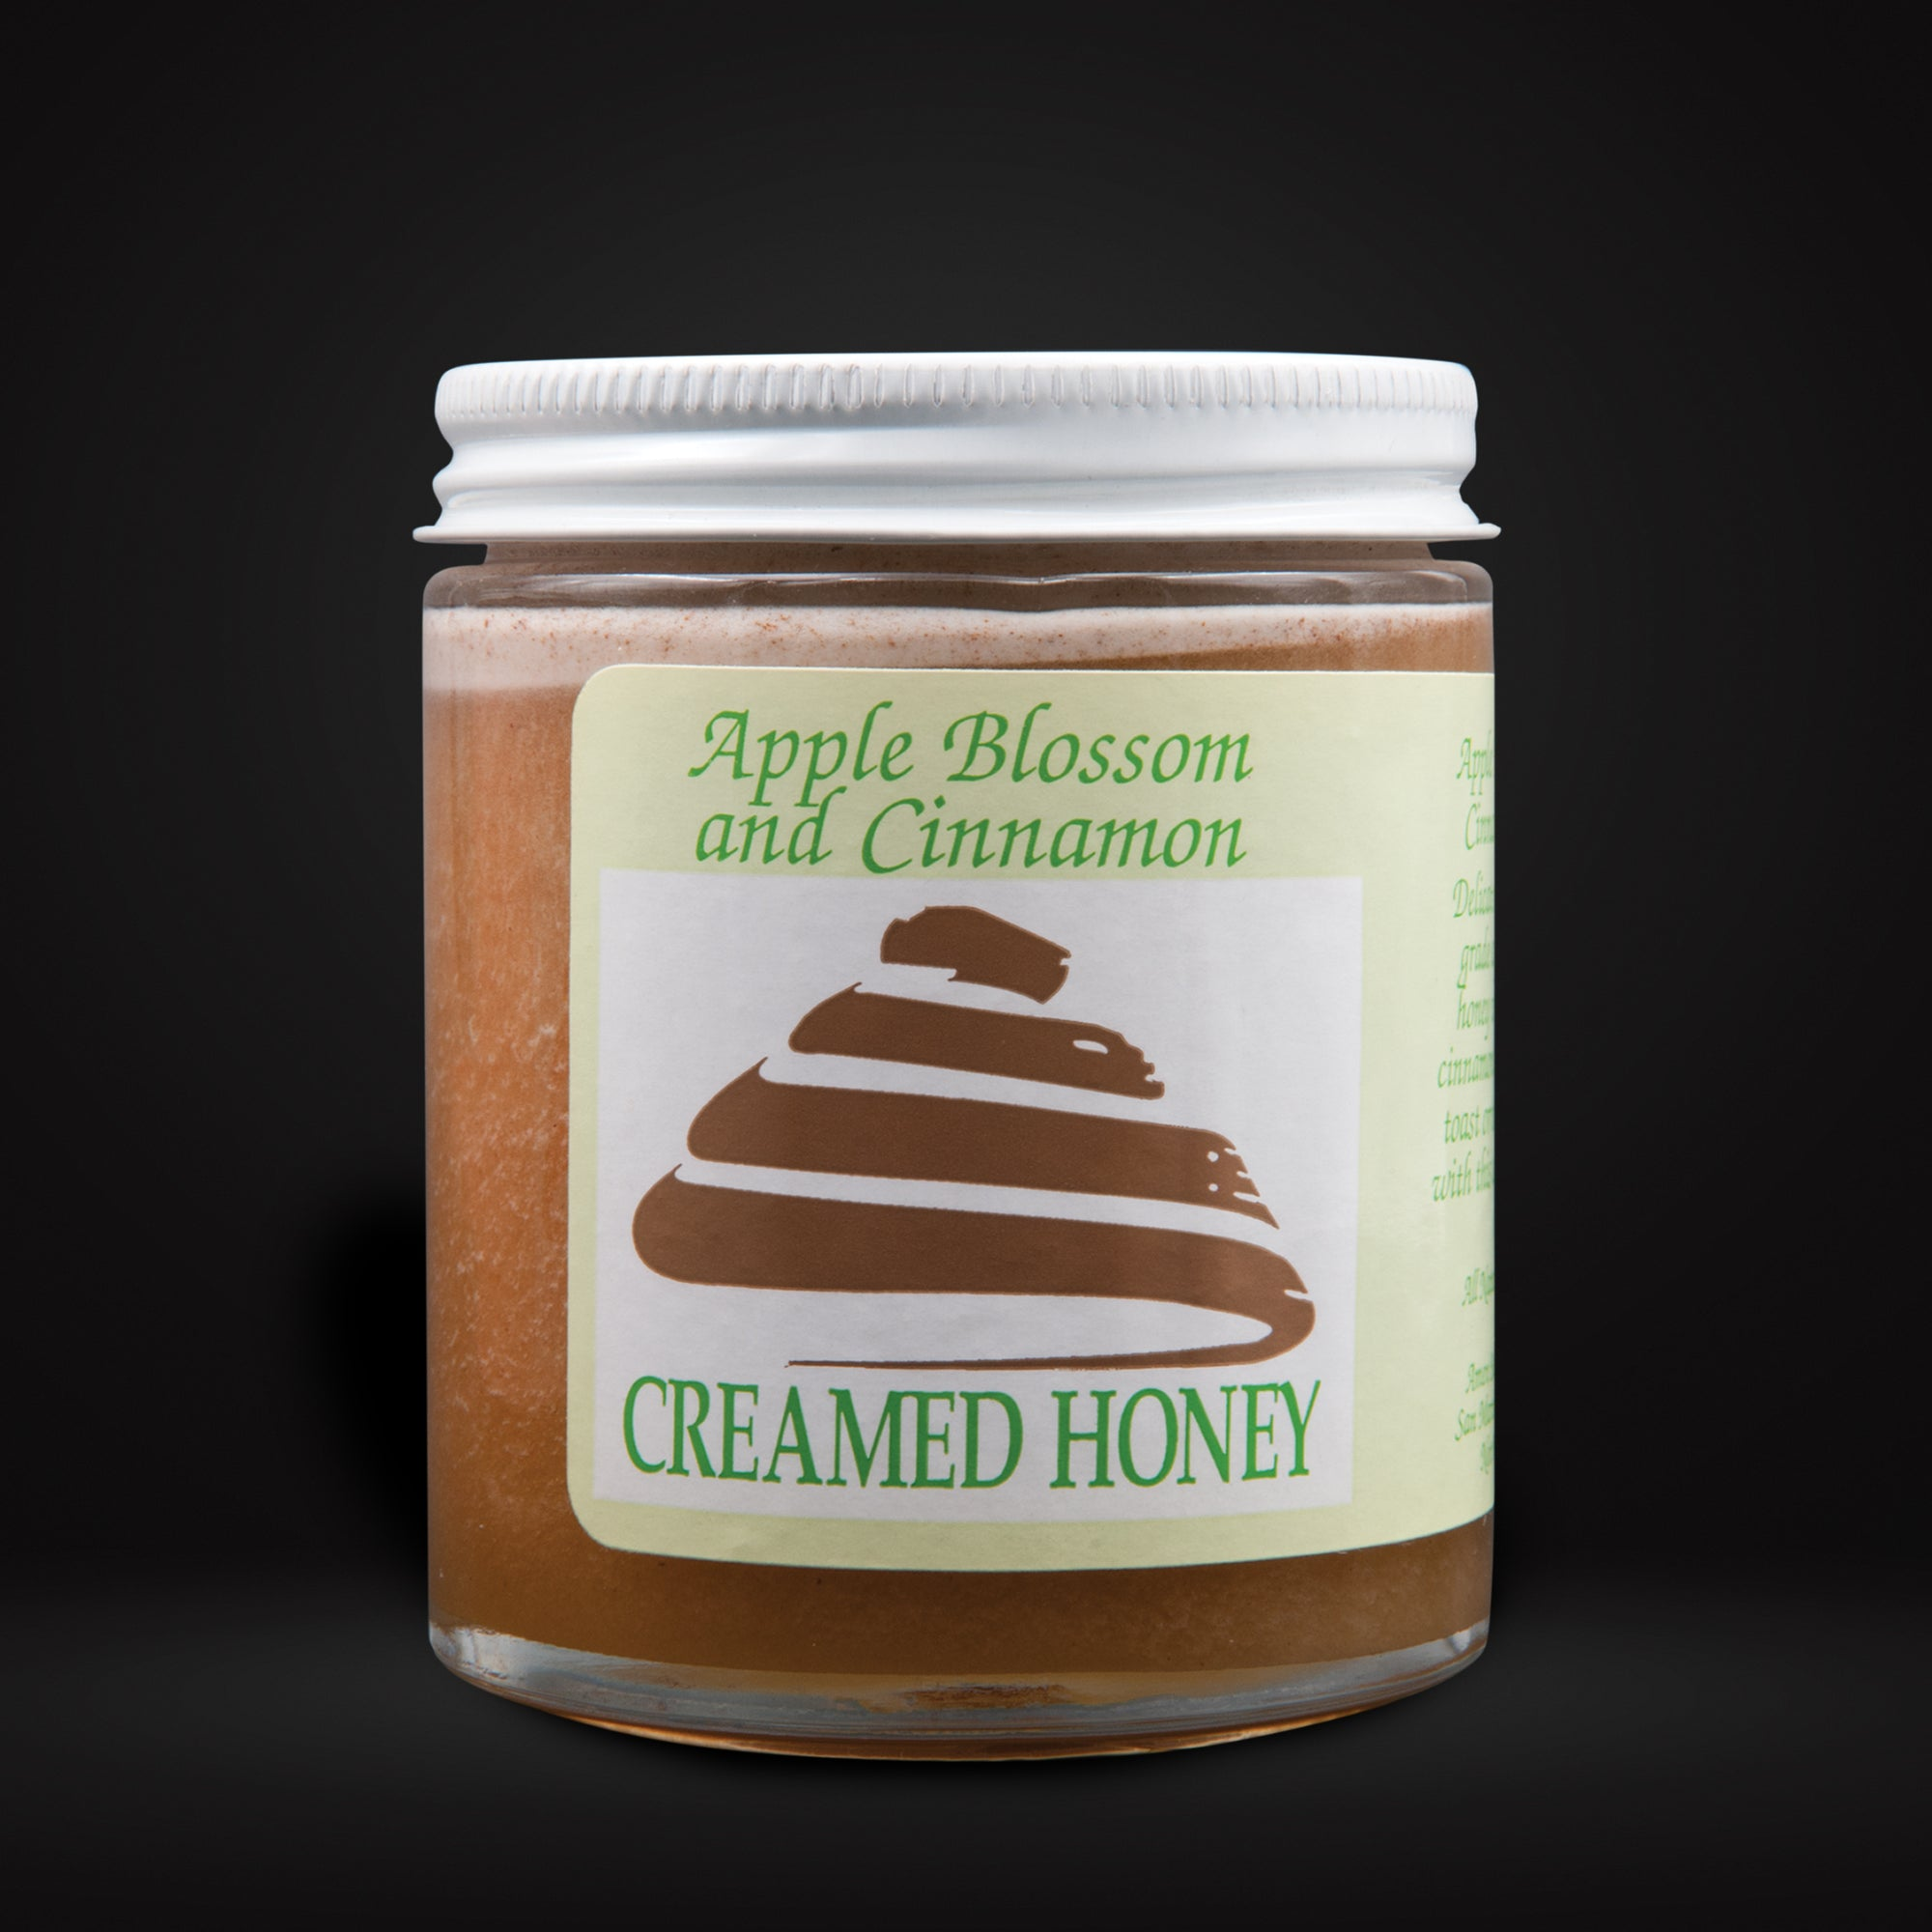 Creamed Honey Apple Blossom and Cinnamon